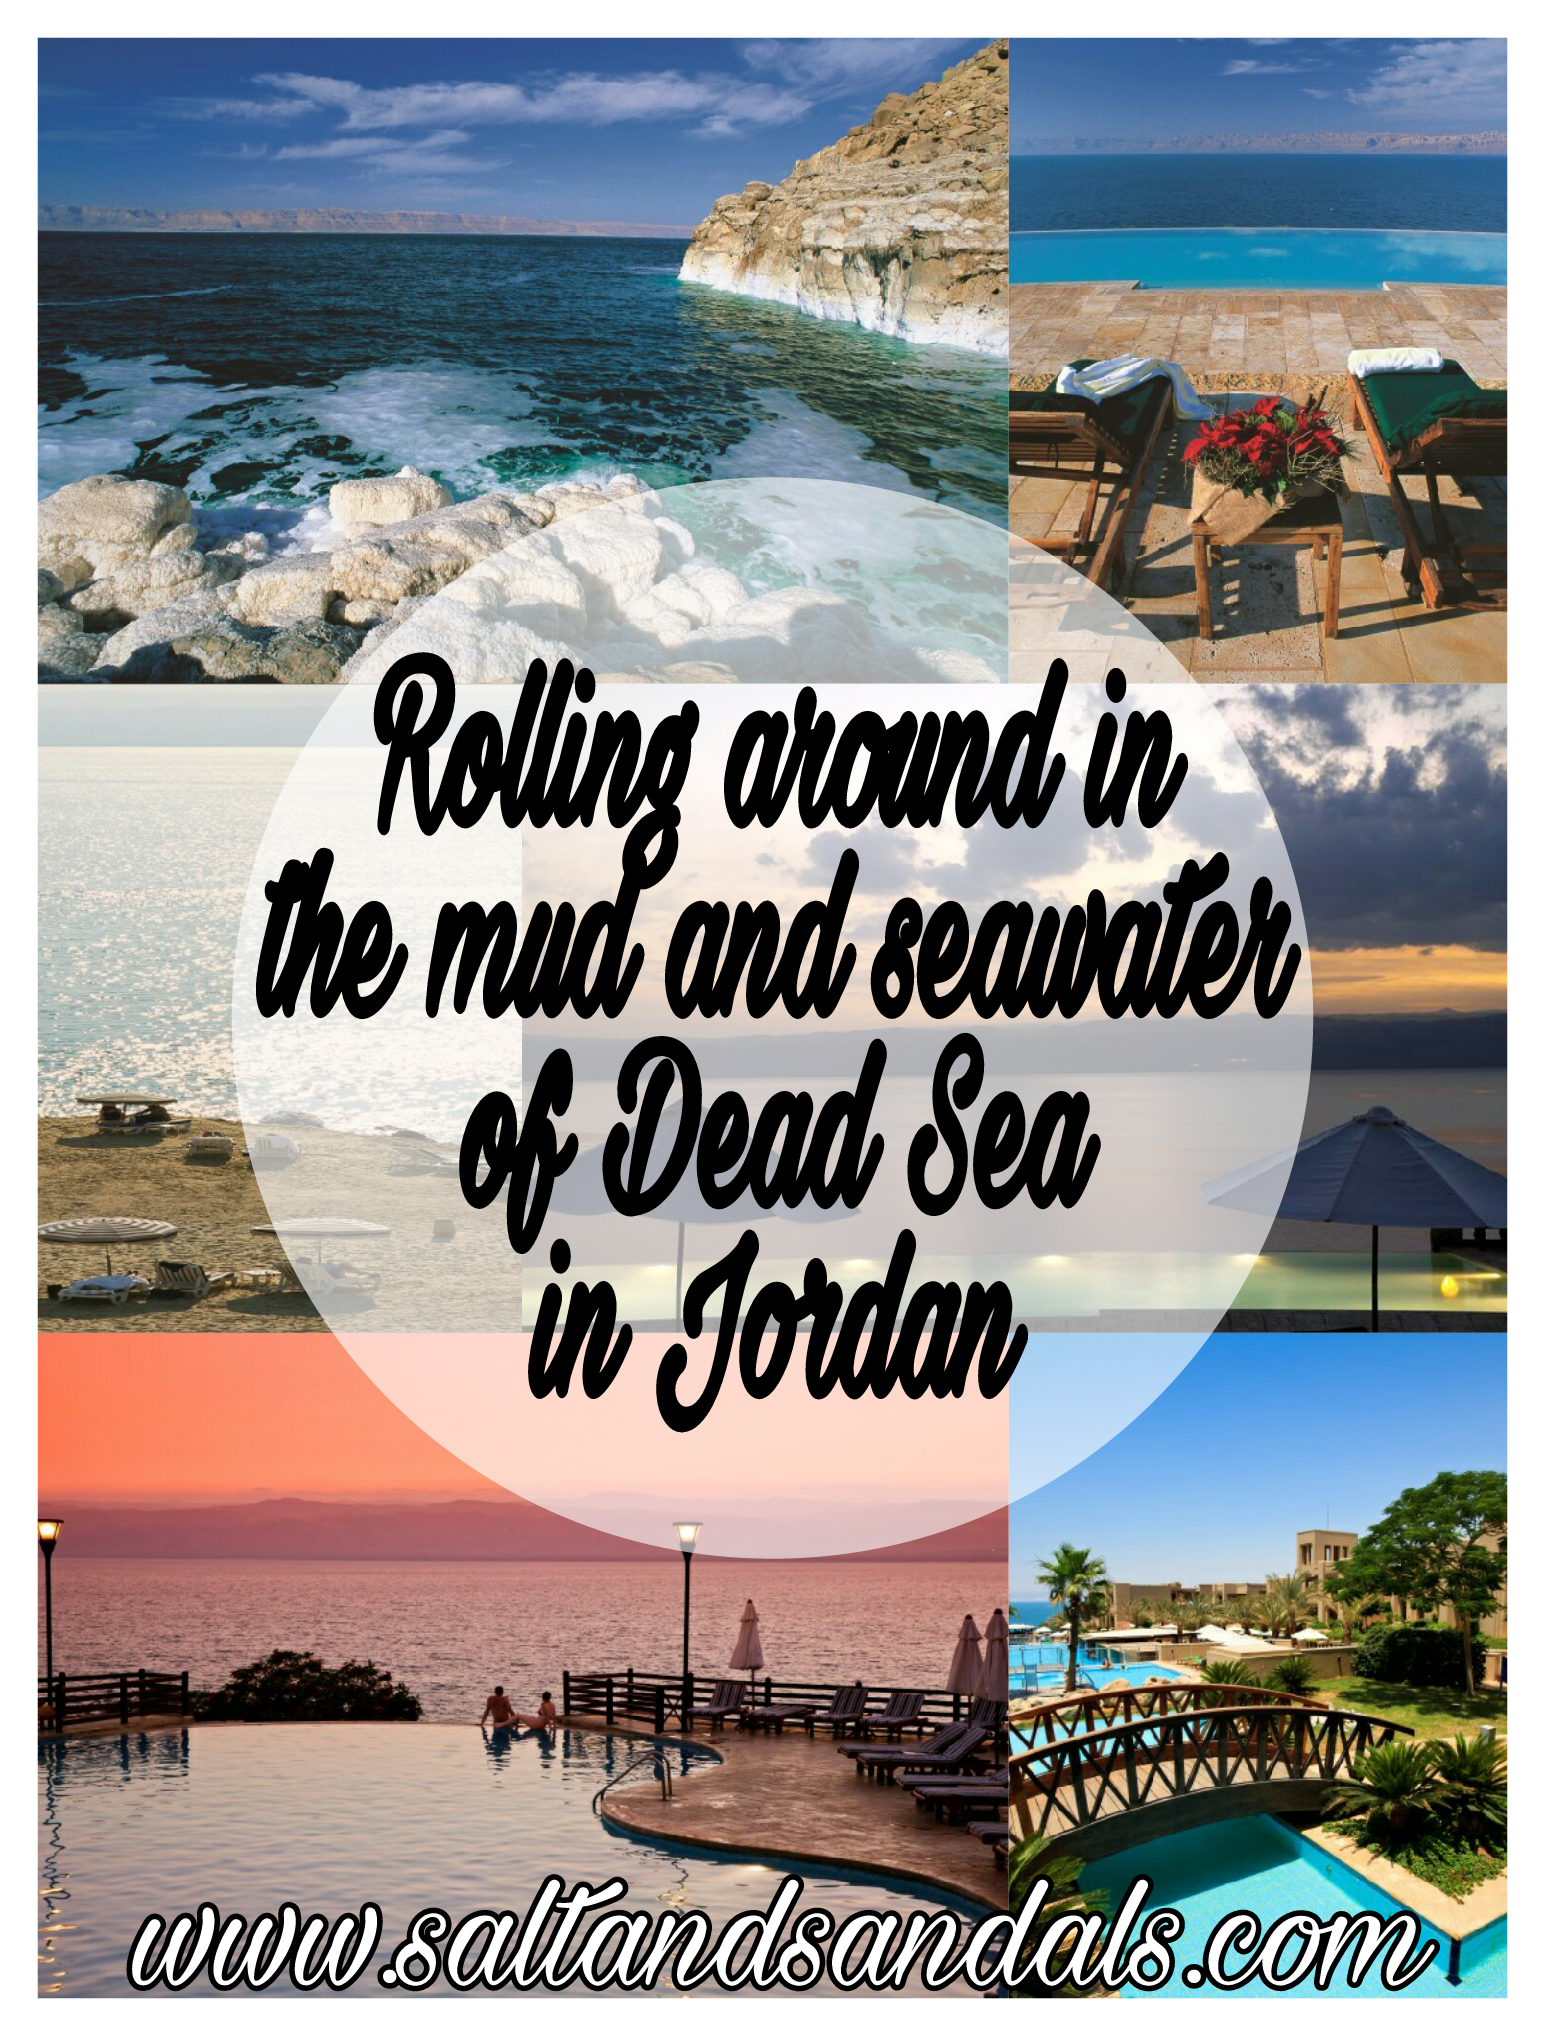 Rolling around in the mud and seawater of the Dead Sea in Jordan